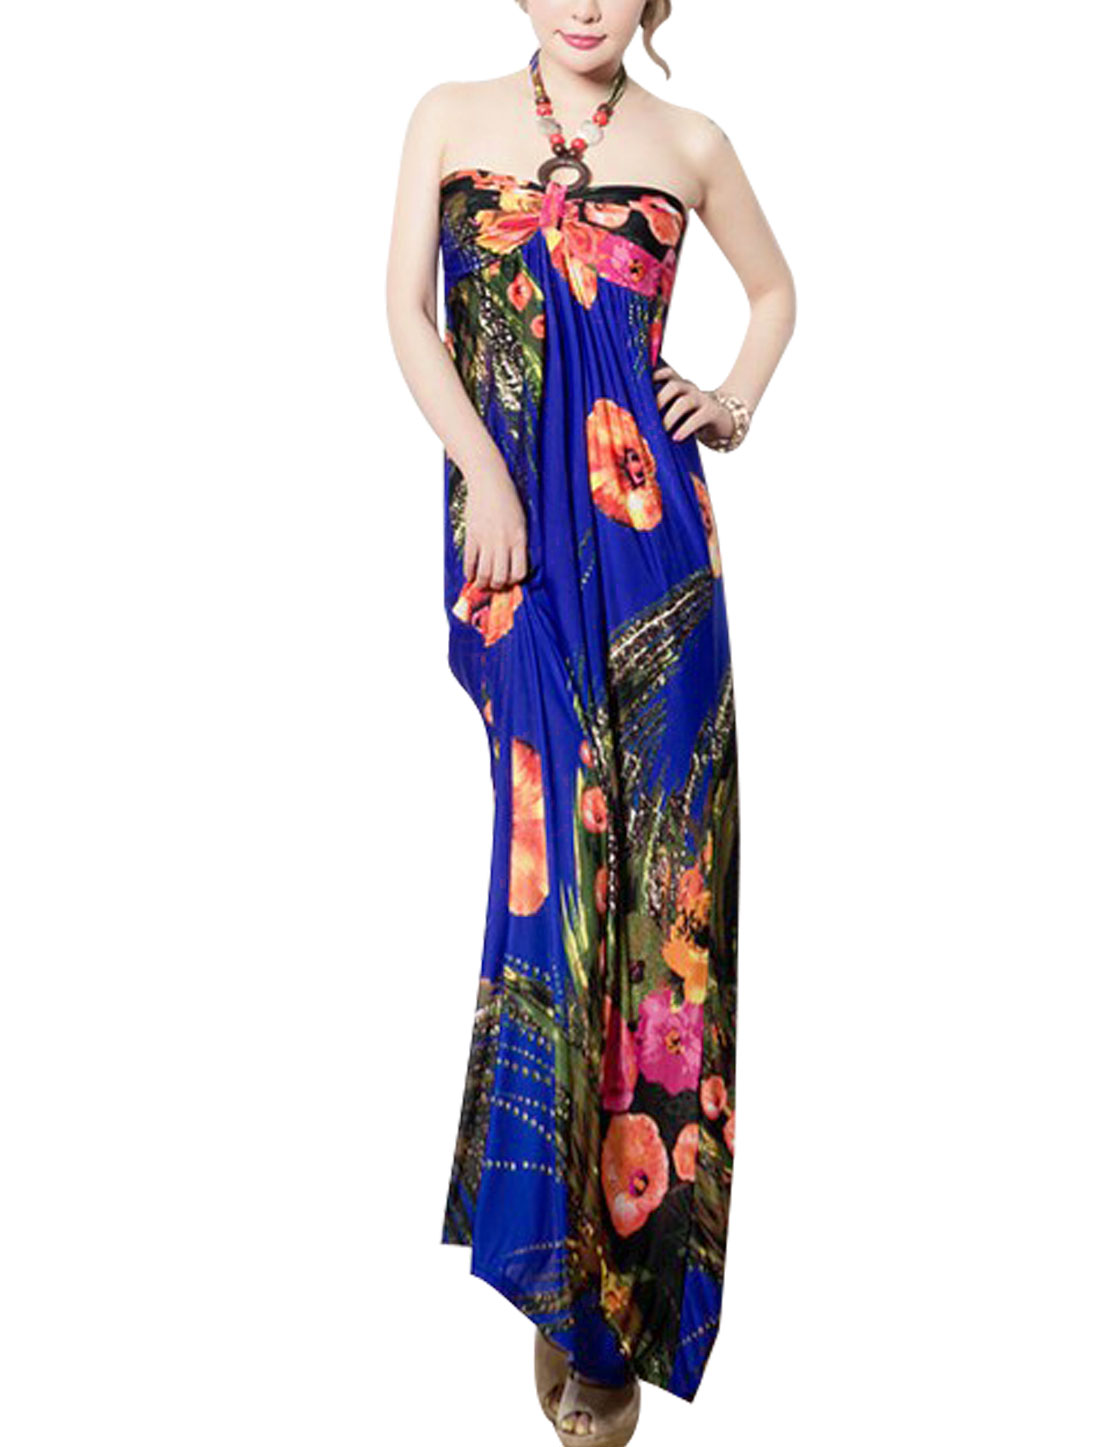 Women Floral Pattern Full Length Beach Self Tie Halter Dress Royal Blue XS